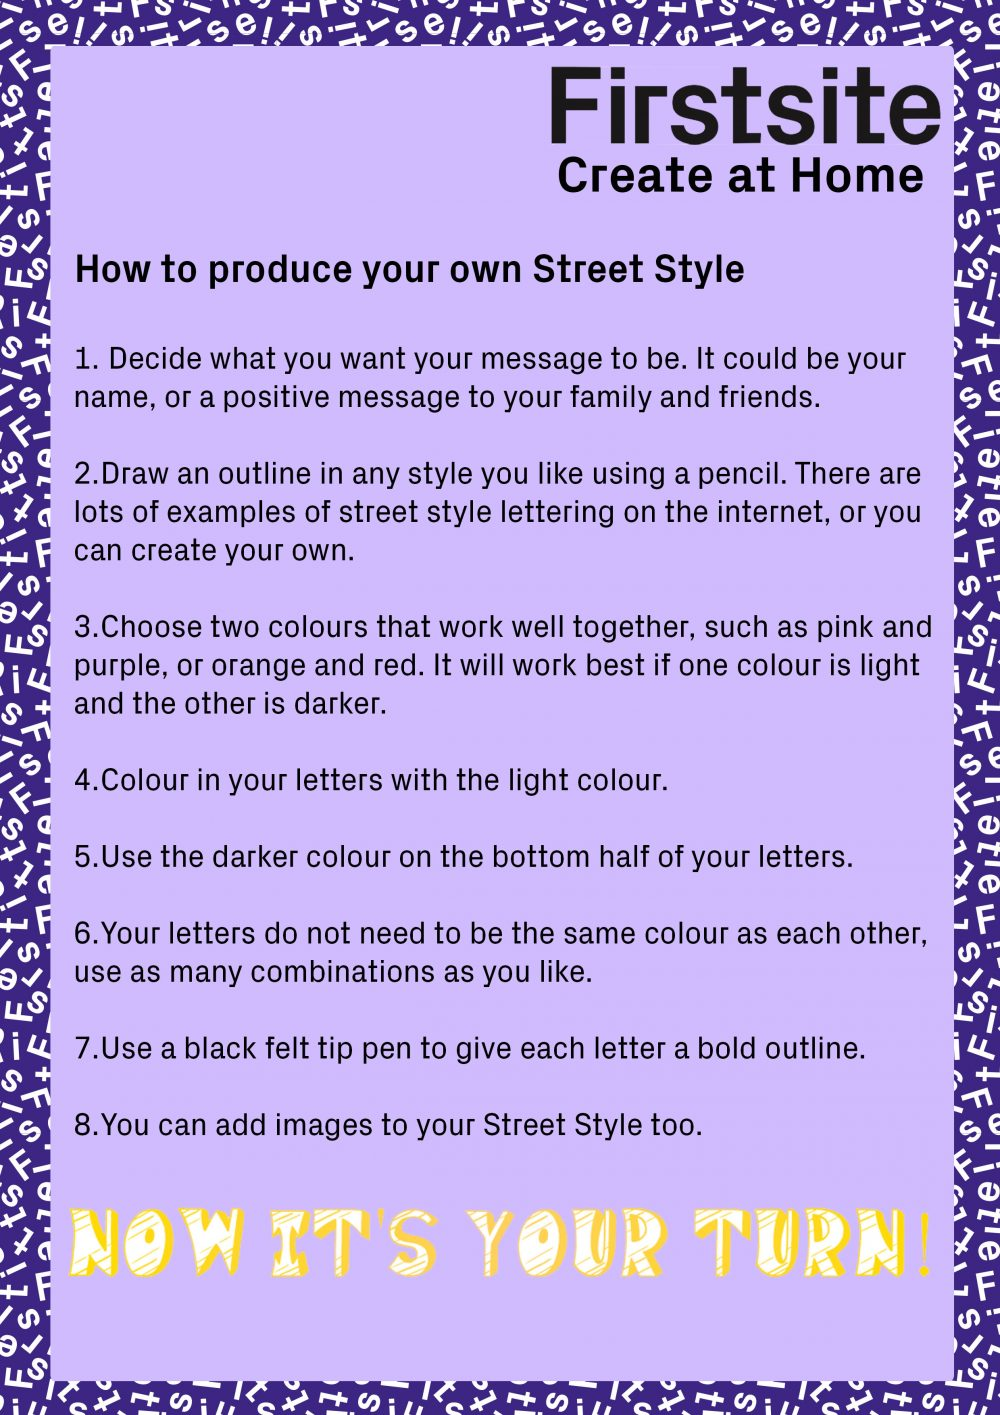 Firstsite Create at Home Street Art Style Activity instructions 2 of 2